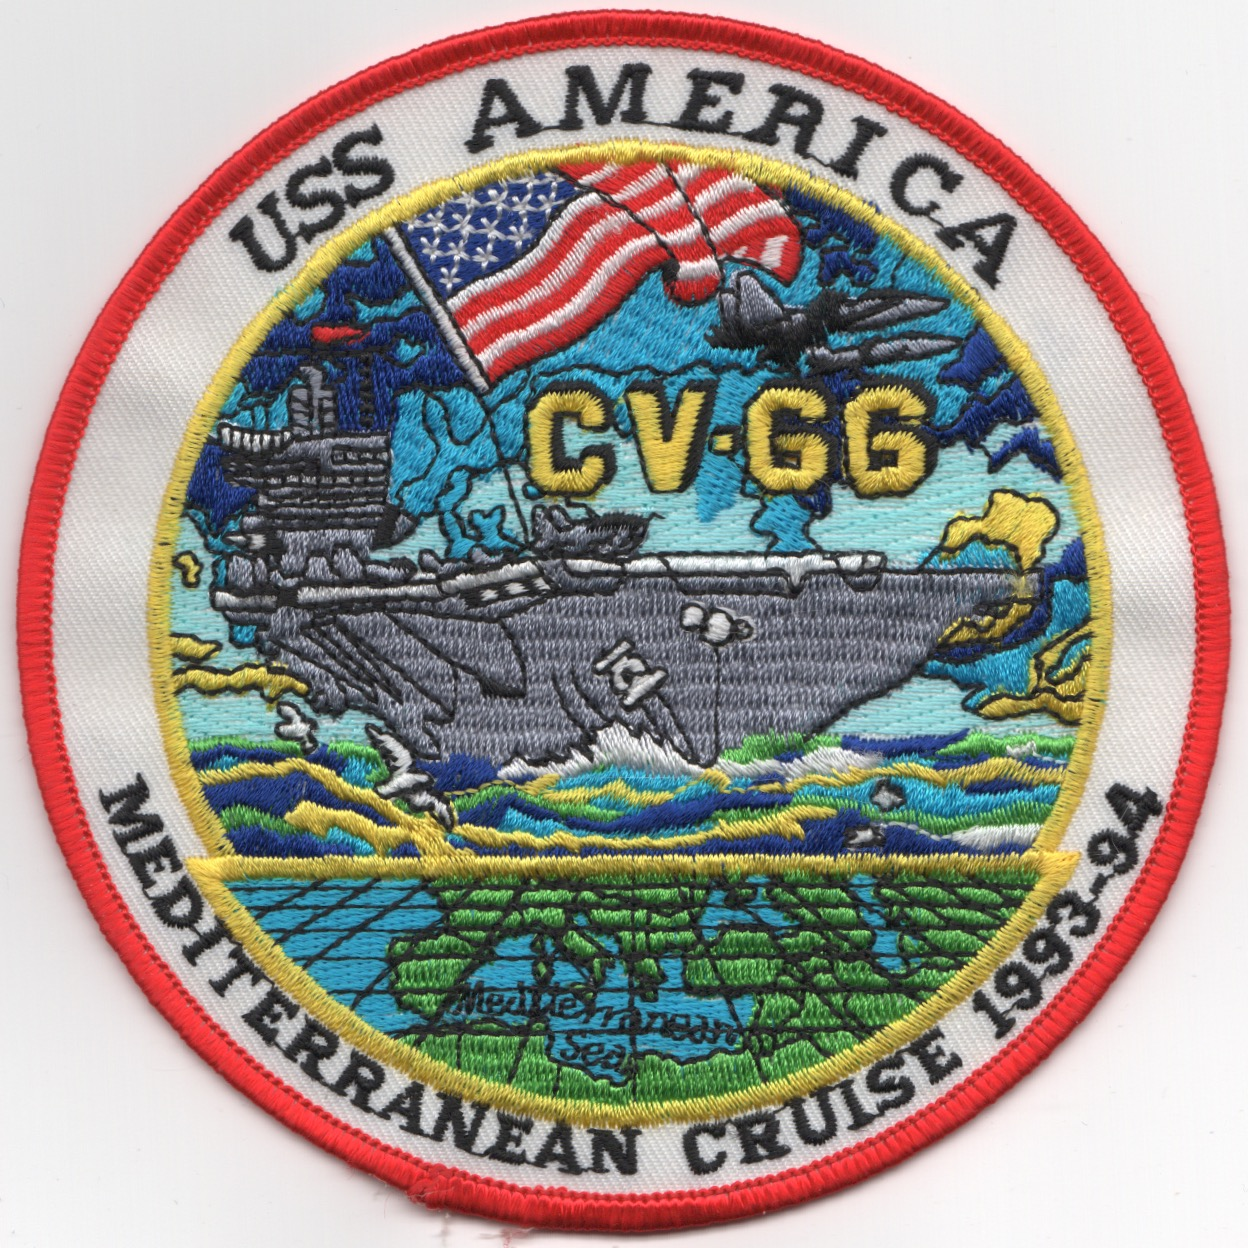 CV-66 '1993-94 MED' Cruise Patch